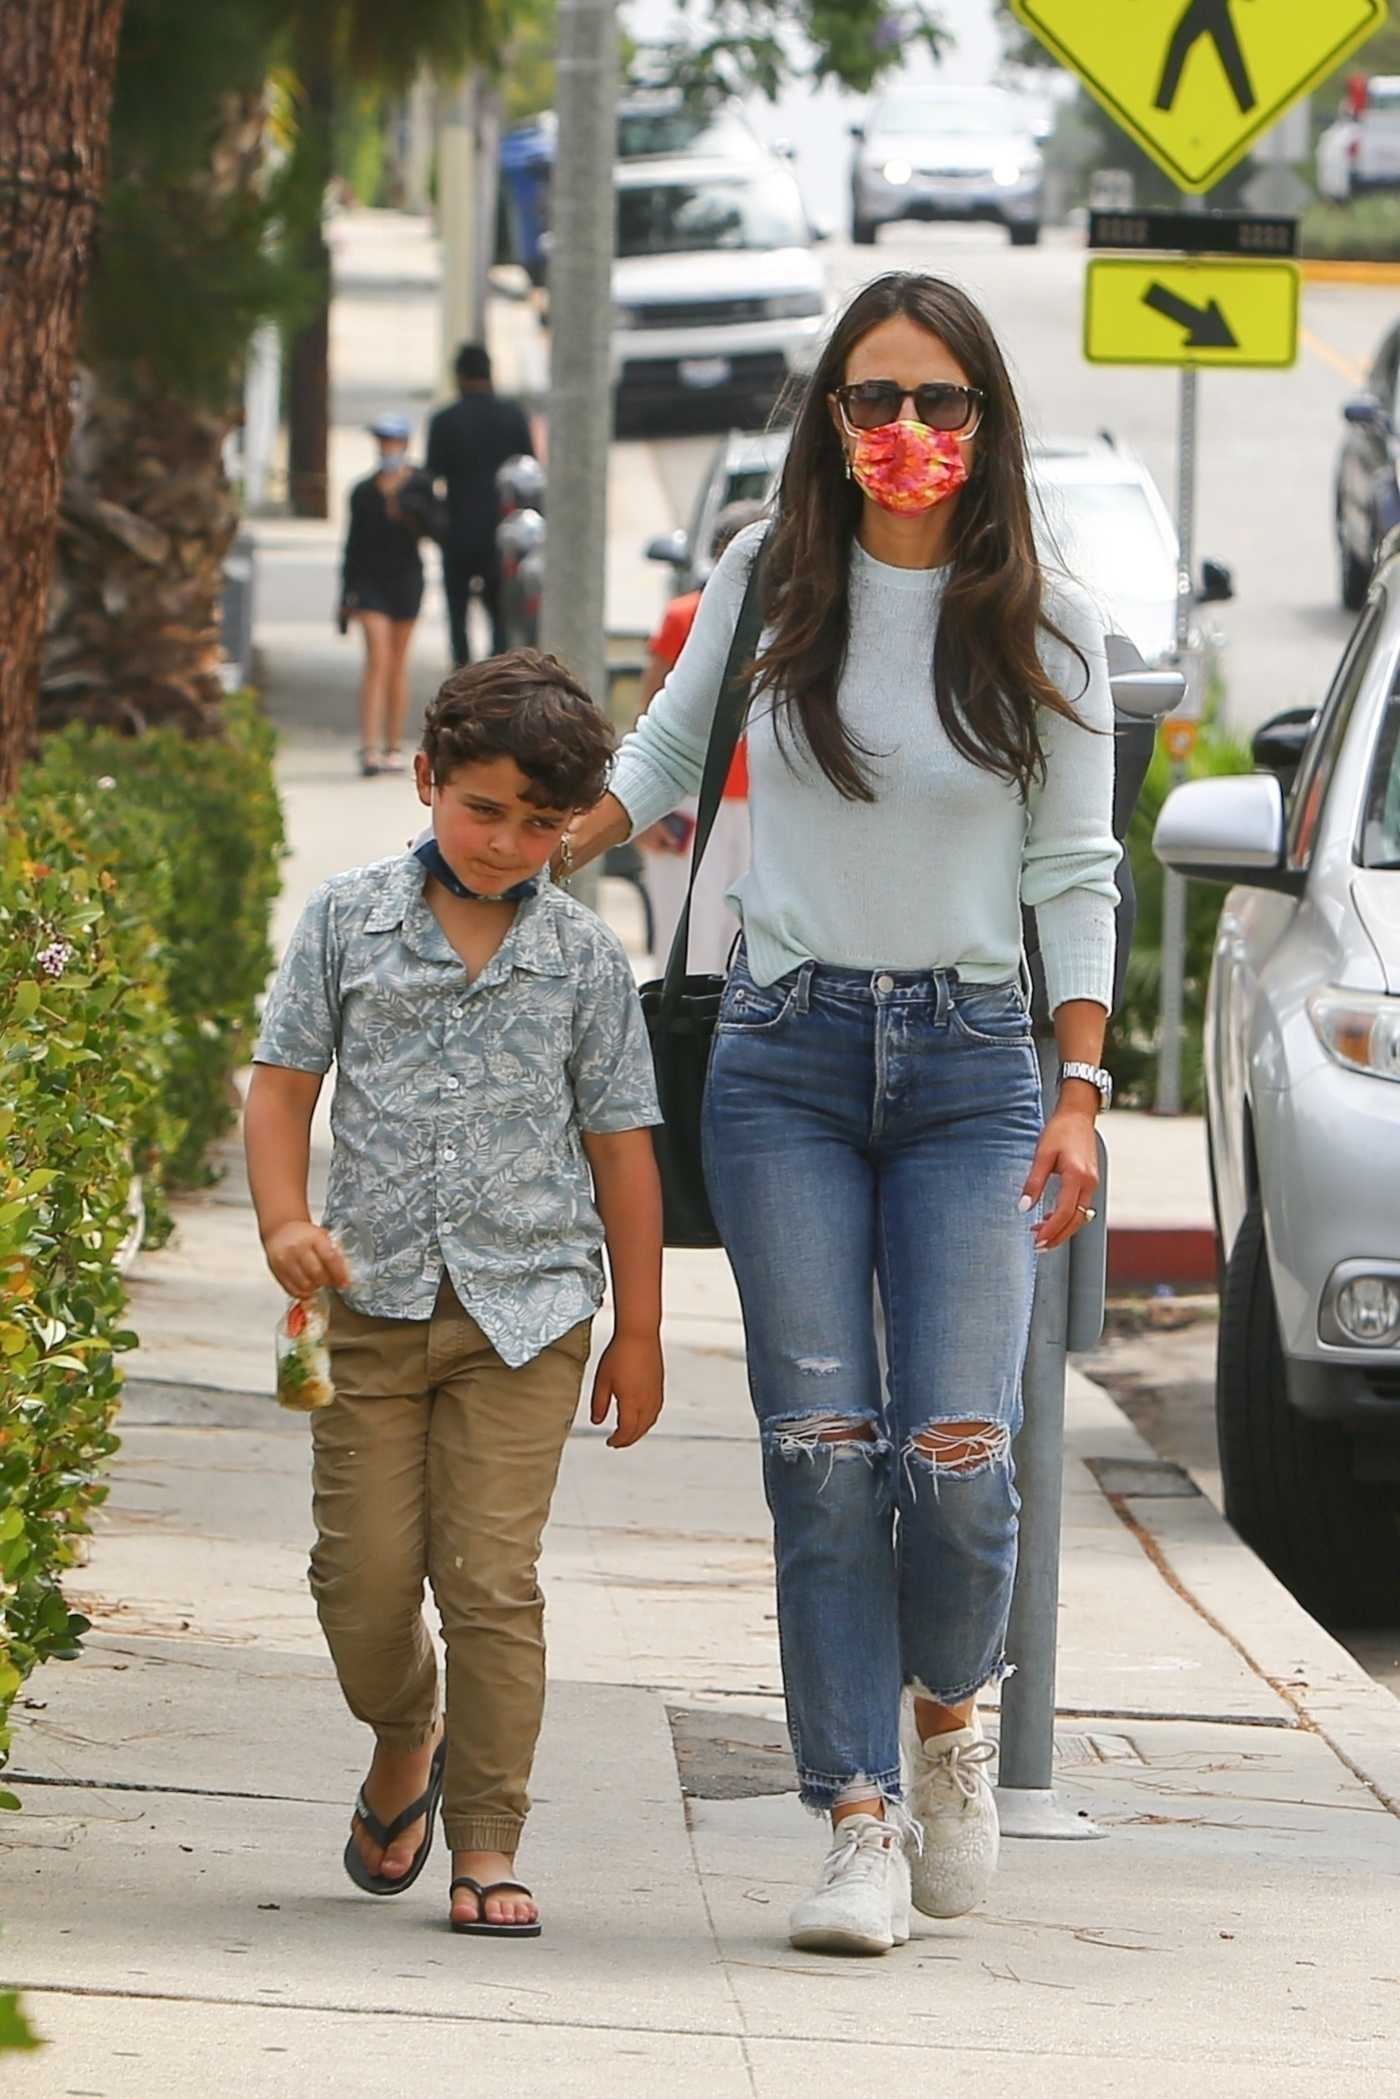 Jordana Brewster in a White Sneakers Was Seen Out with Her Son Julian in Brentwood 08/31/2021